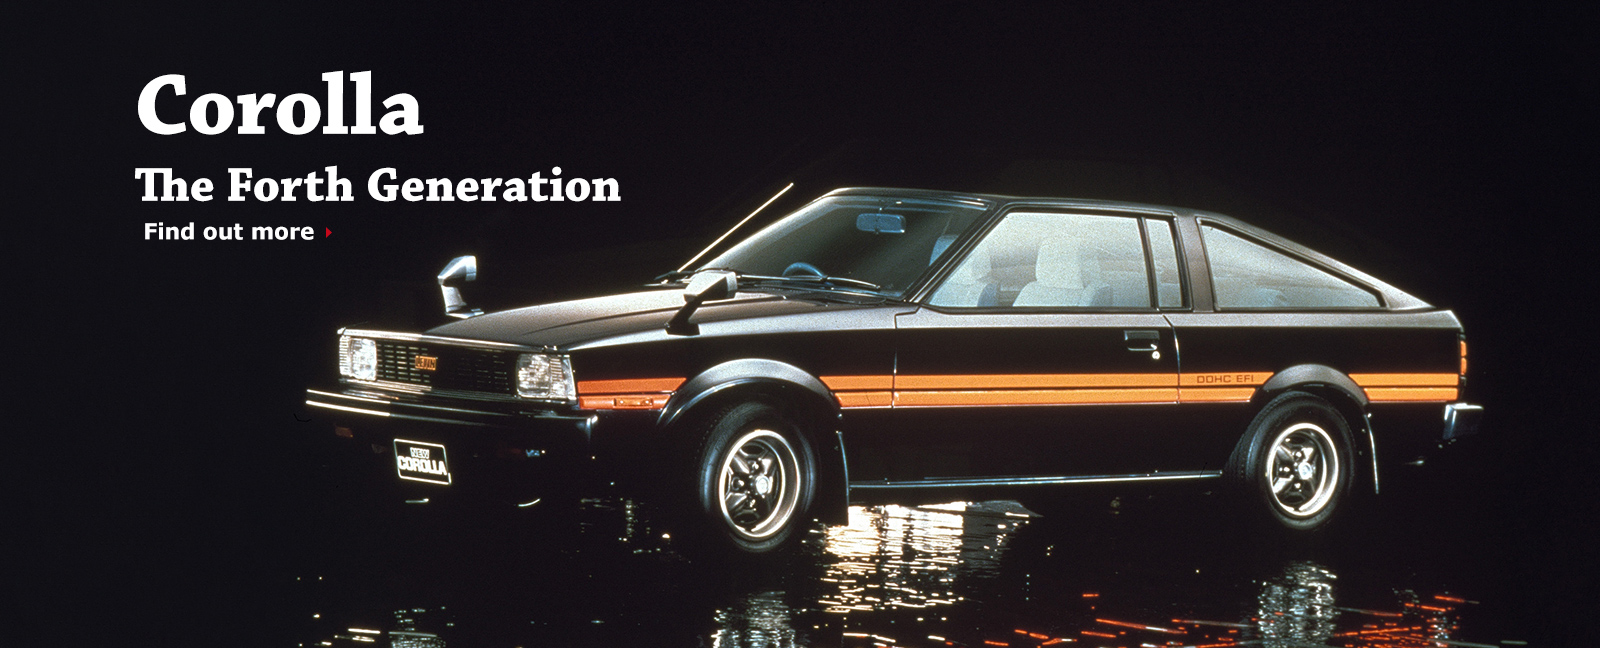 Corolla The Forth Generation Find out more